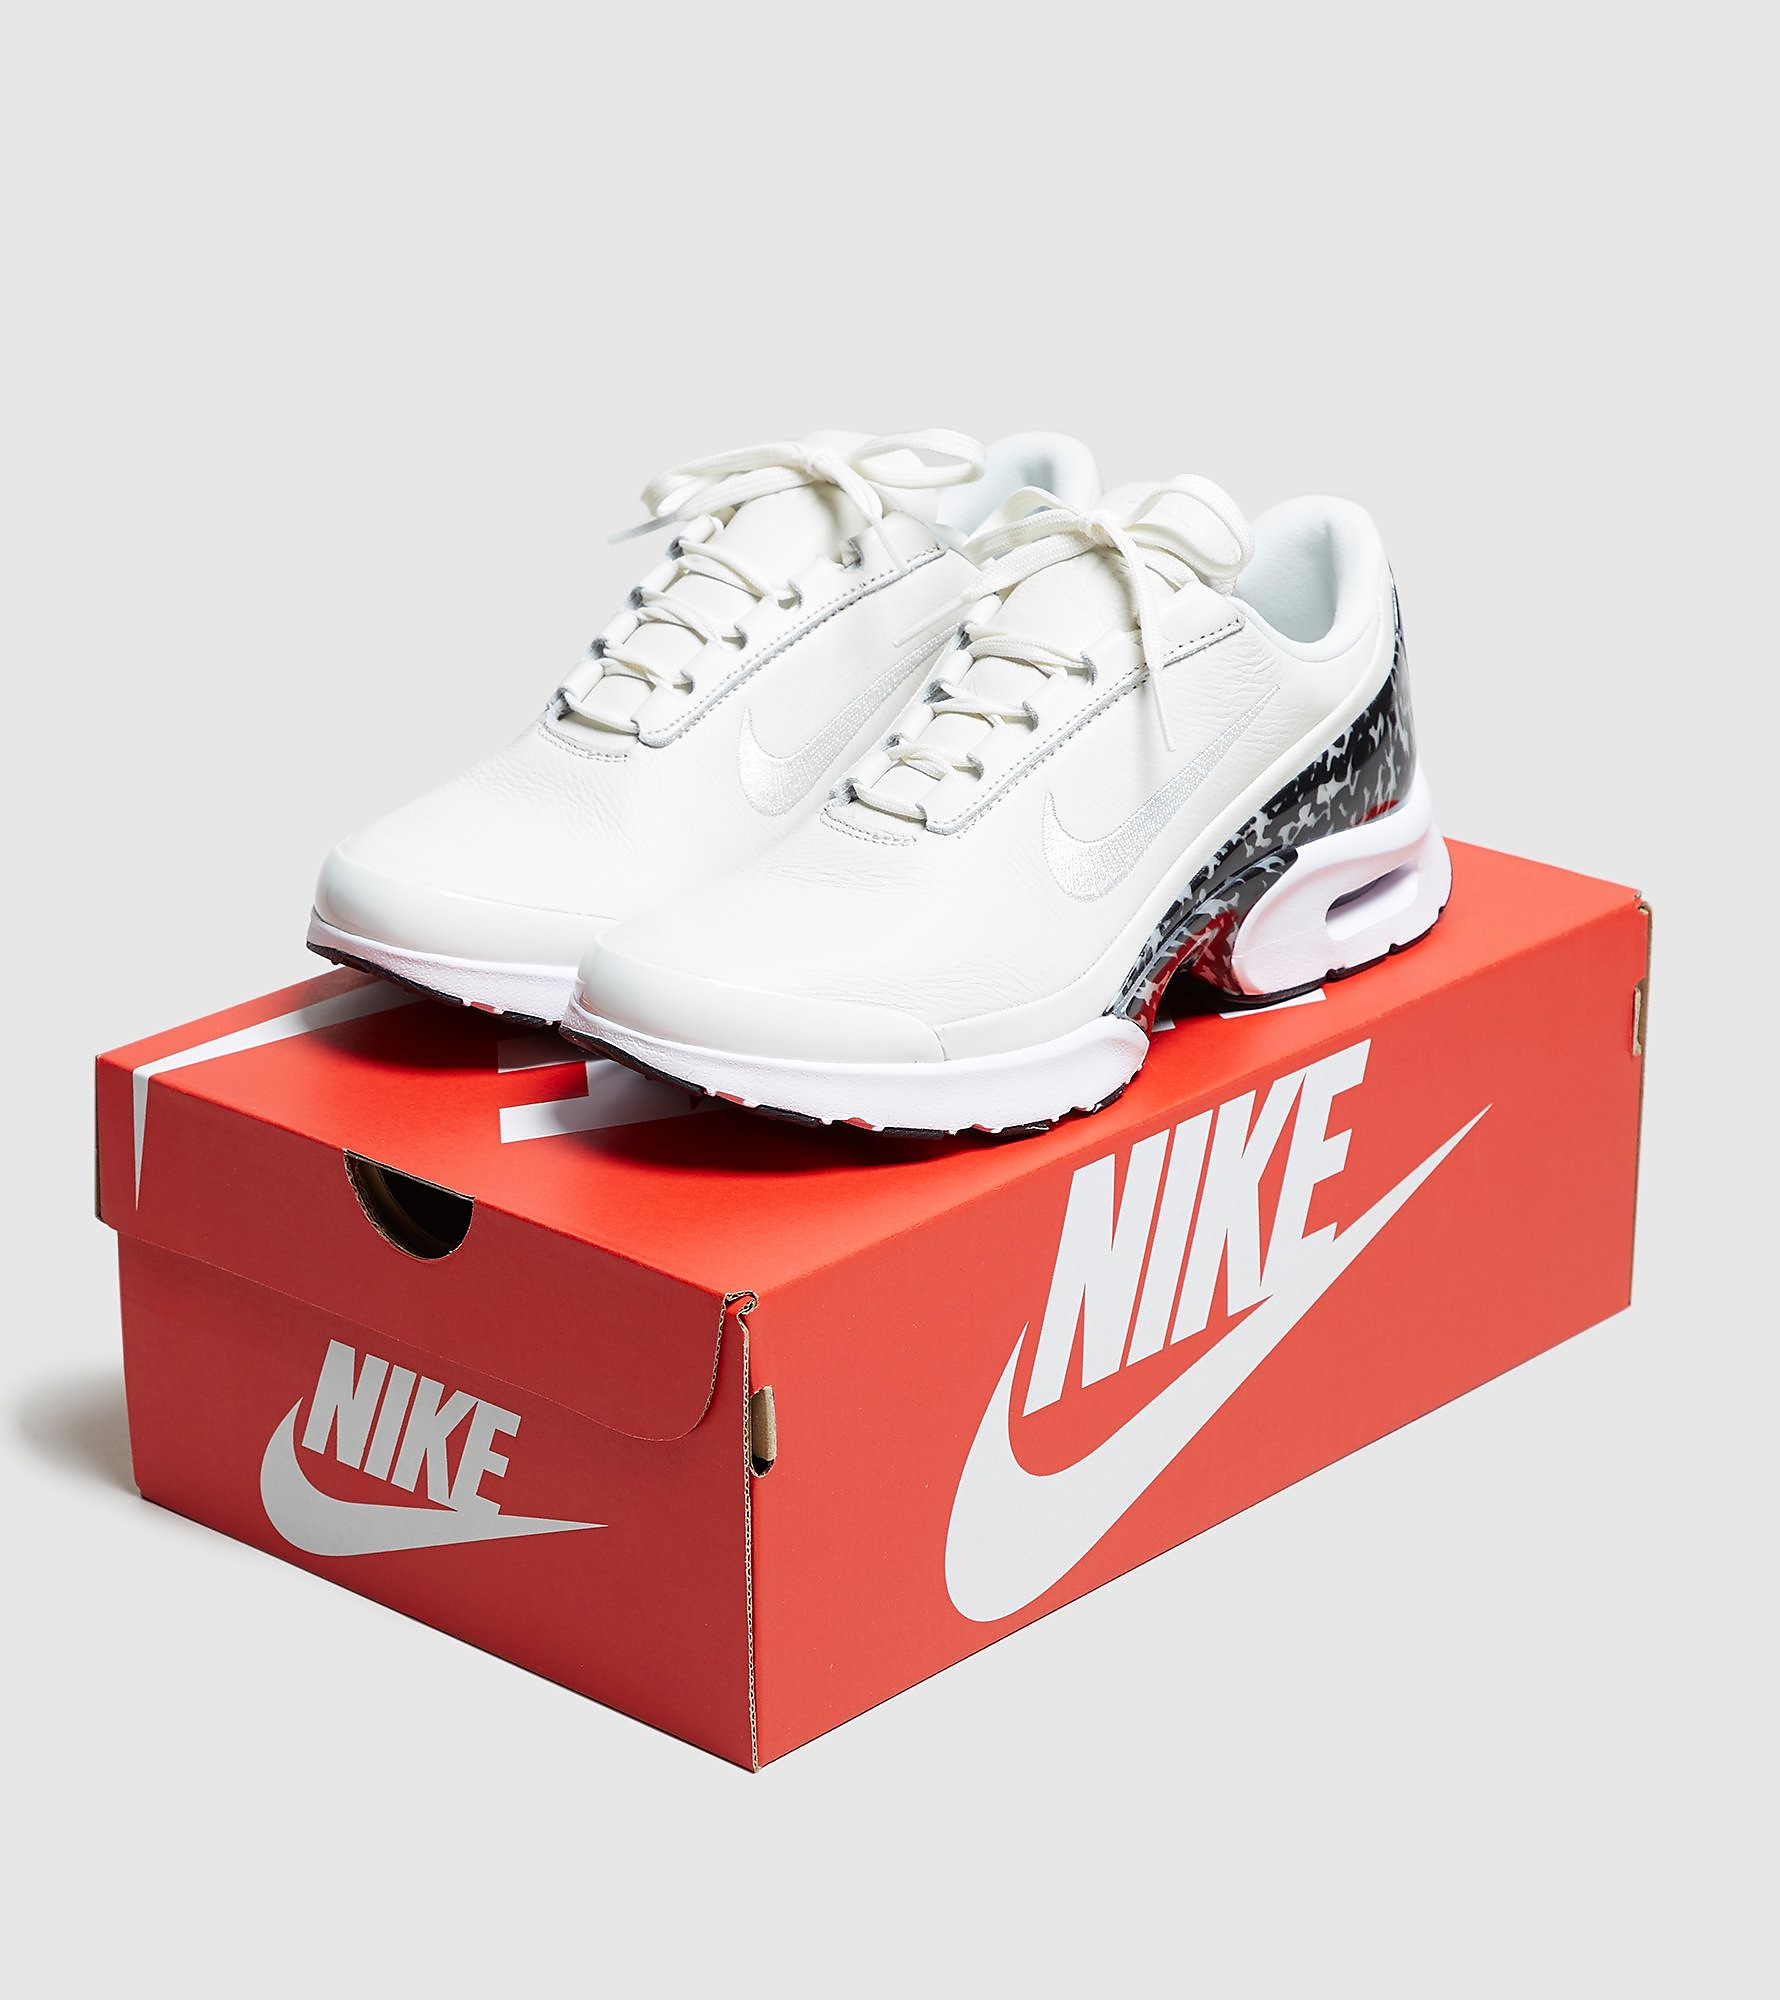 Nike Air Max Jewell LX Women's